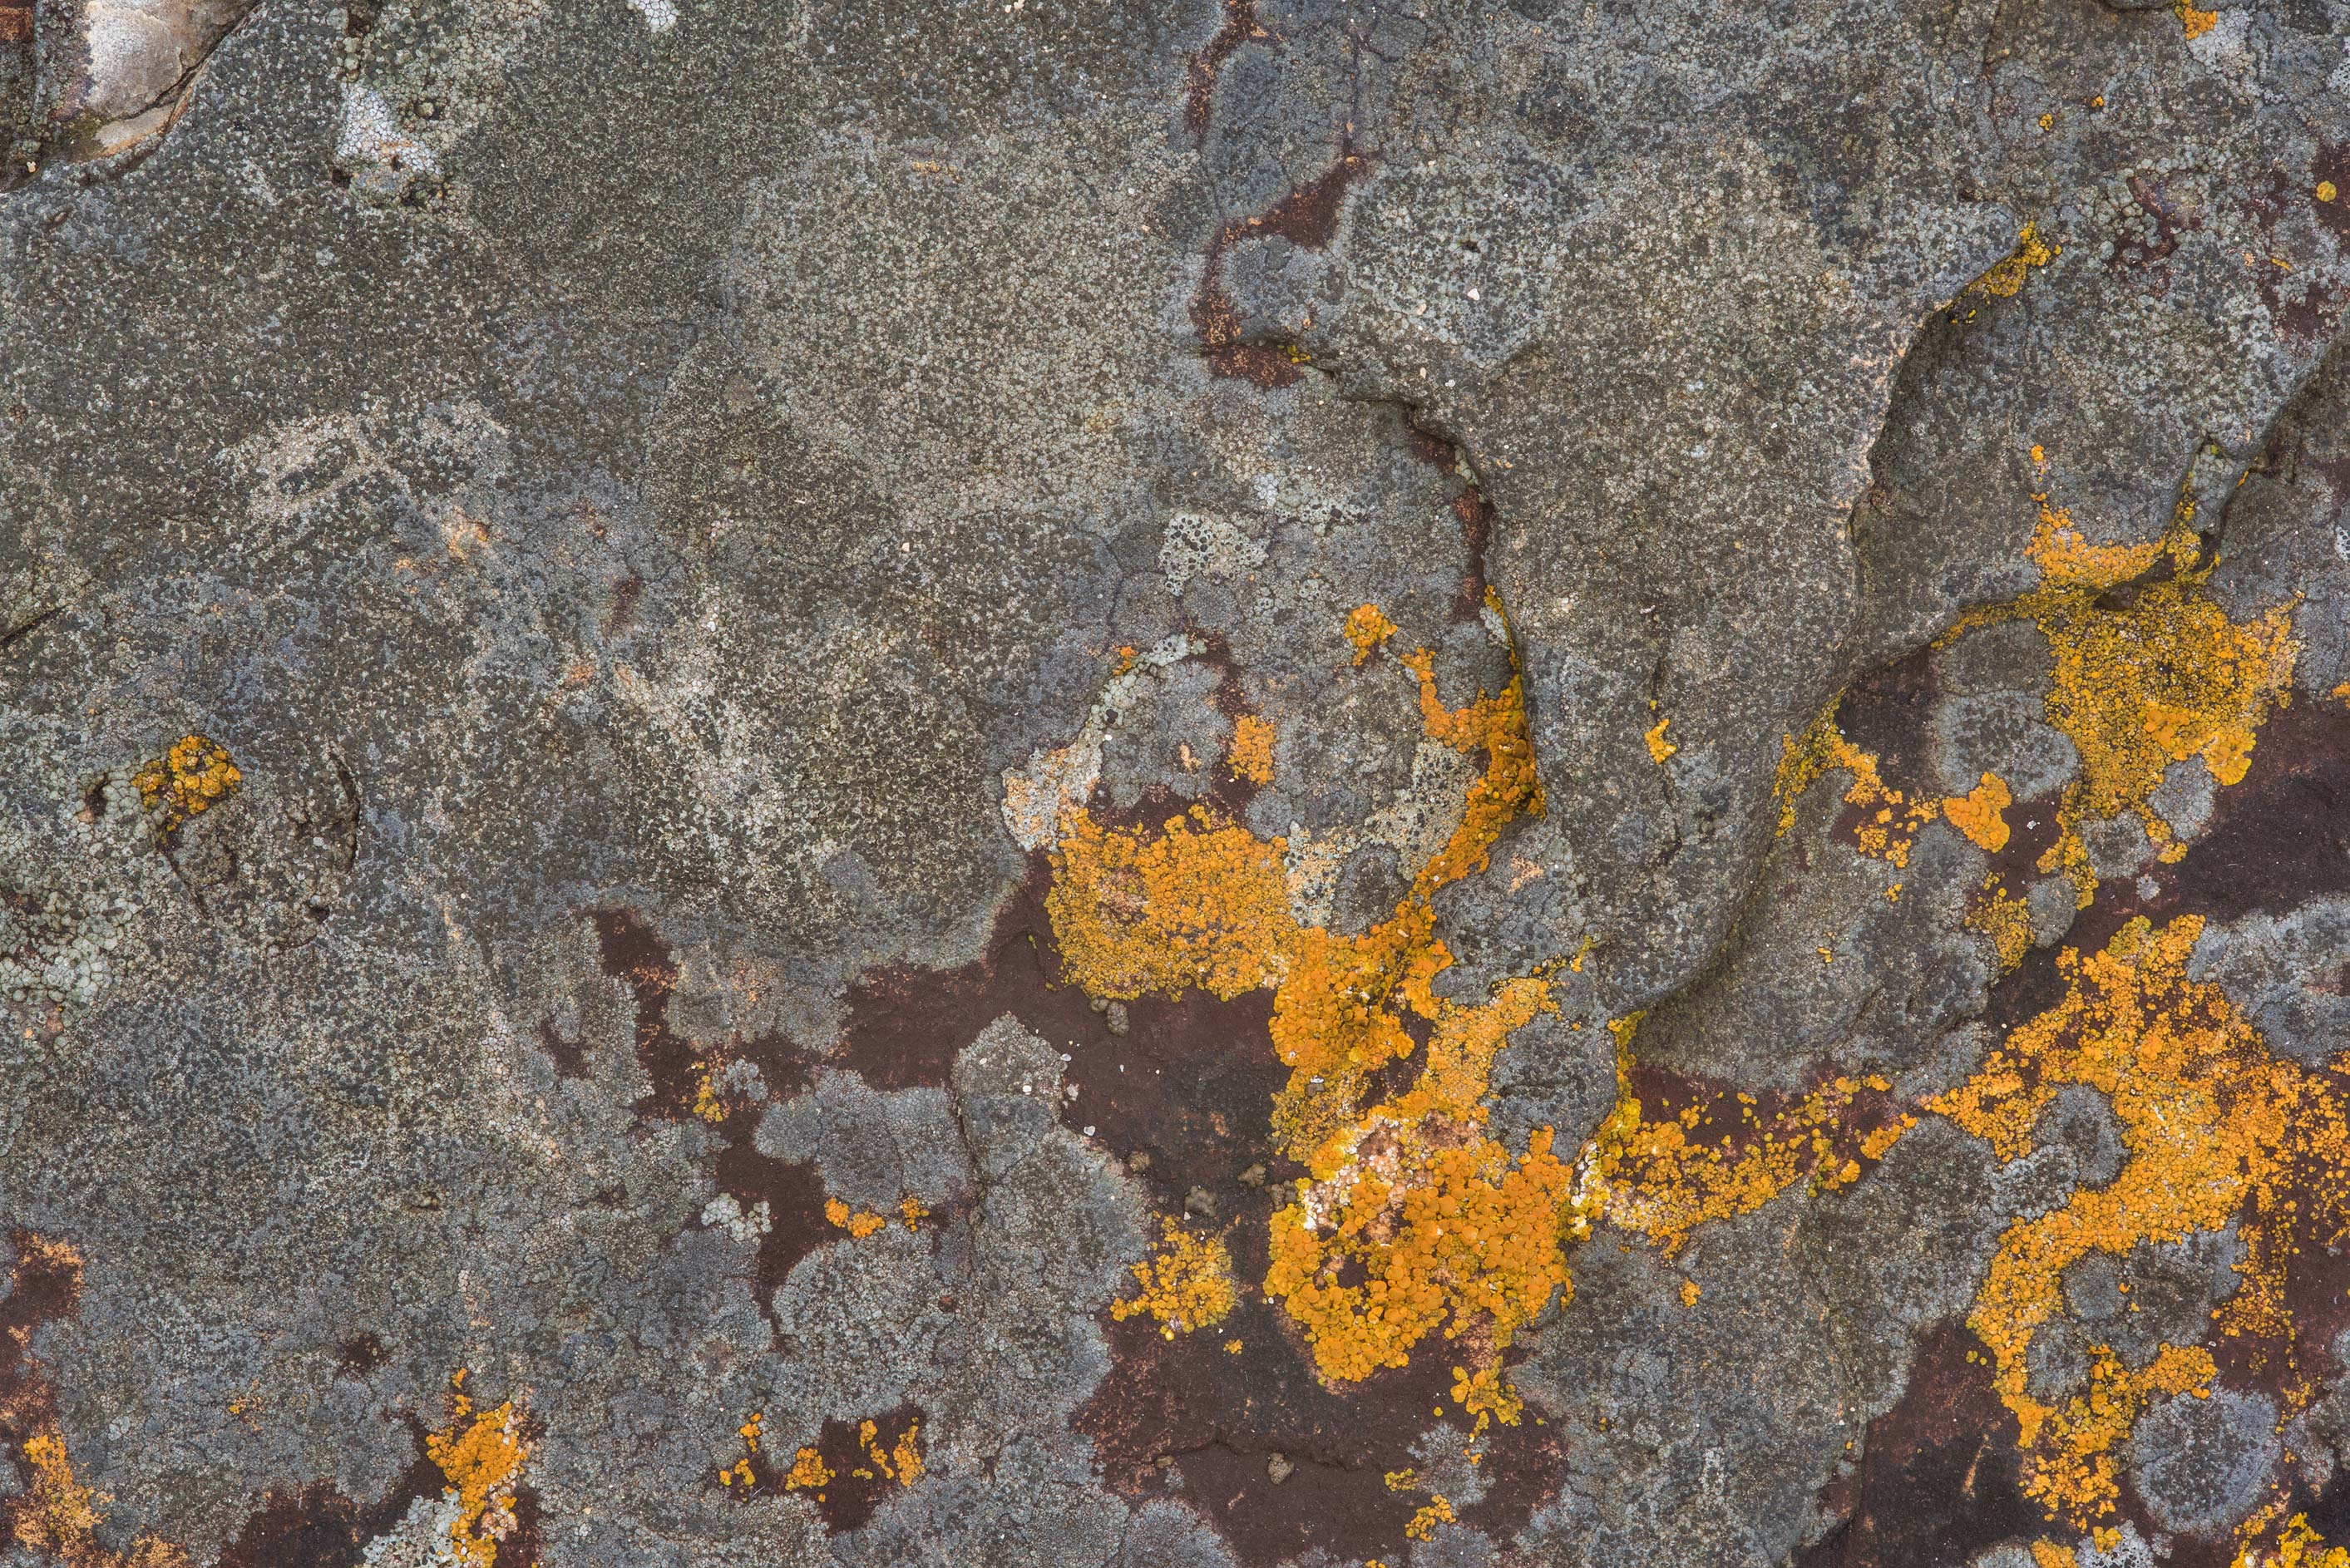 Brown and orange crustose lichens on limestone in...Falls State Park. Johnson City, Texas